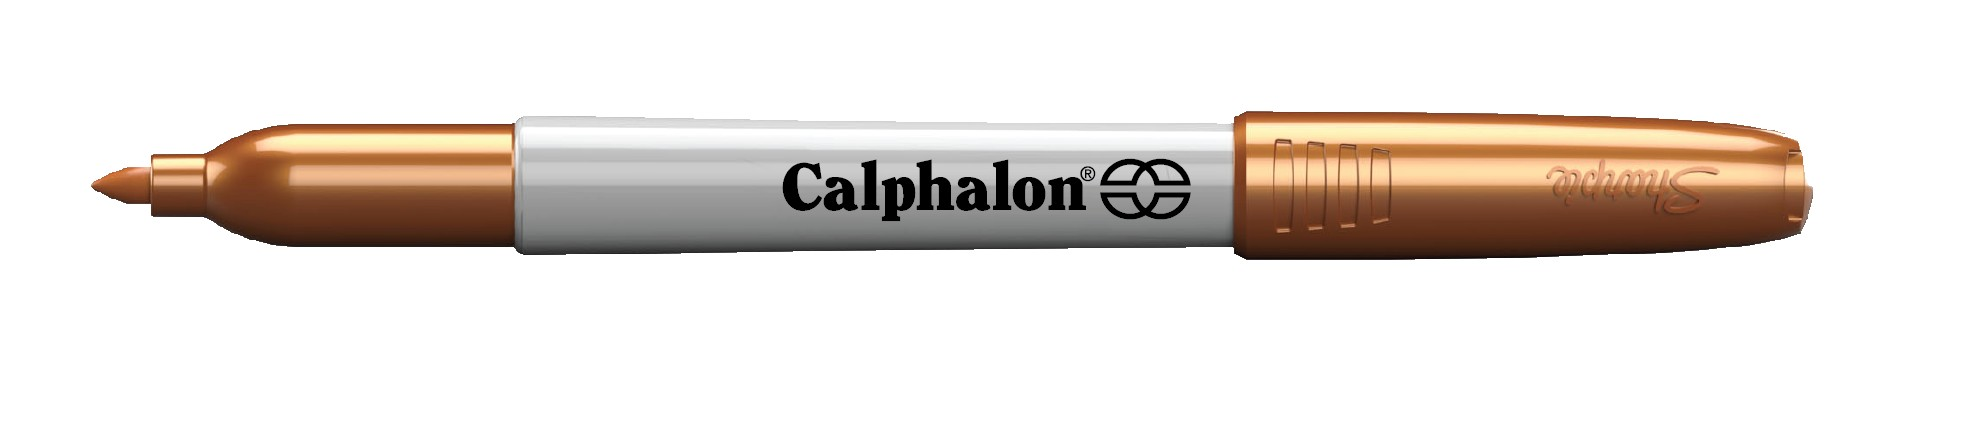 784462429-164 - Sharpie® Fine Point Metallic Capped Permanent Marker - thumbnail